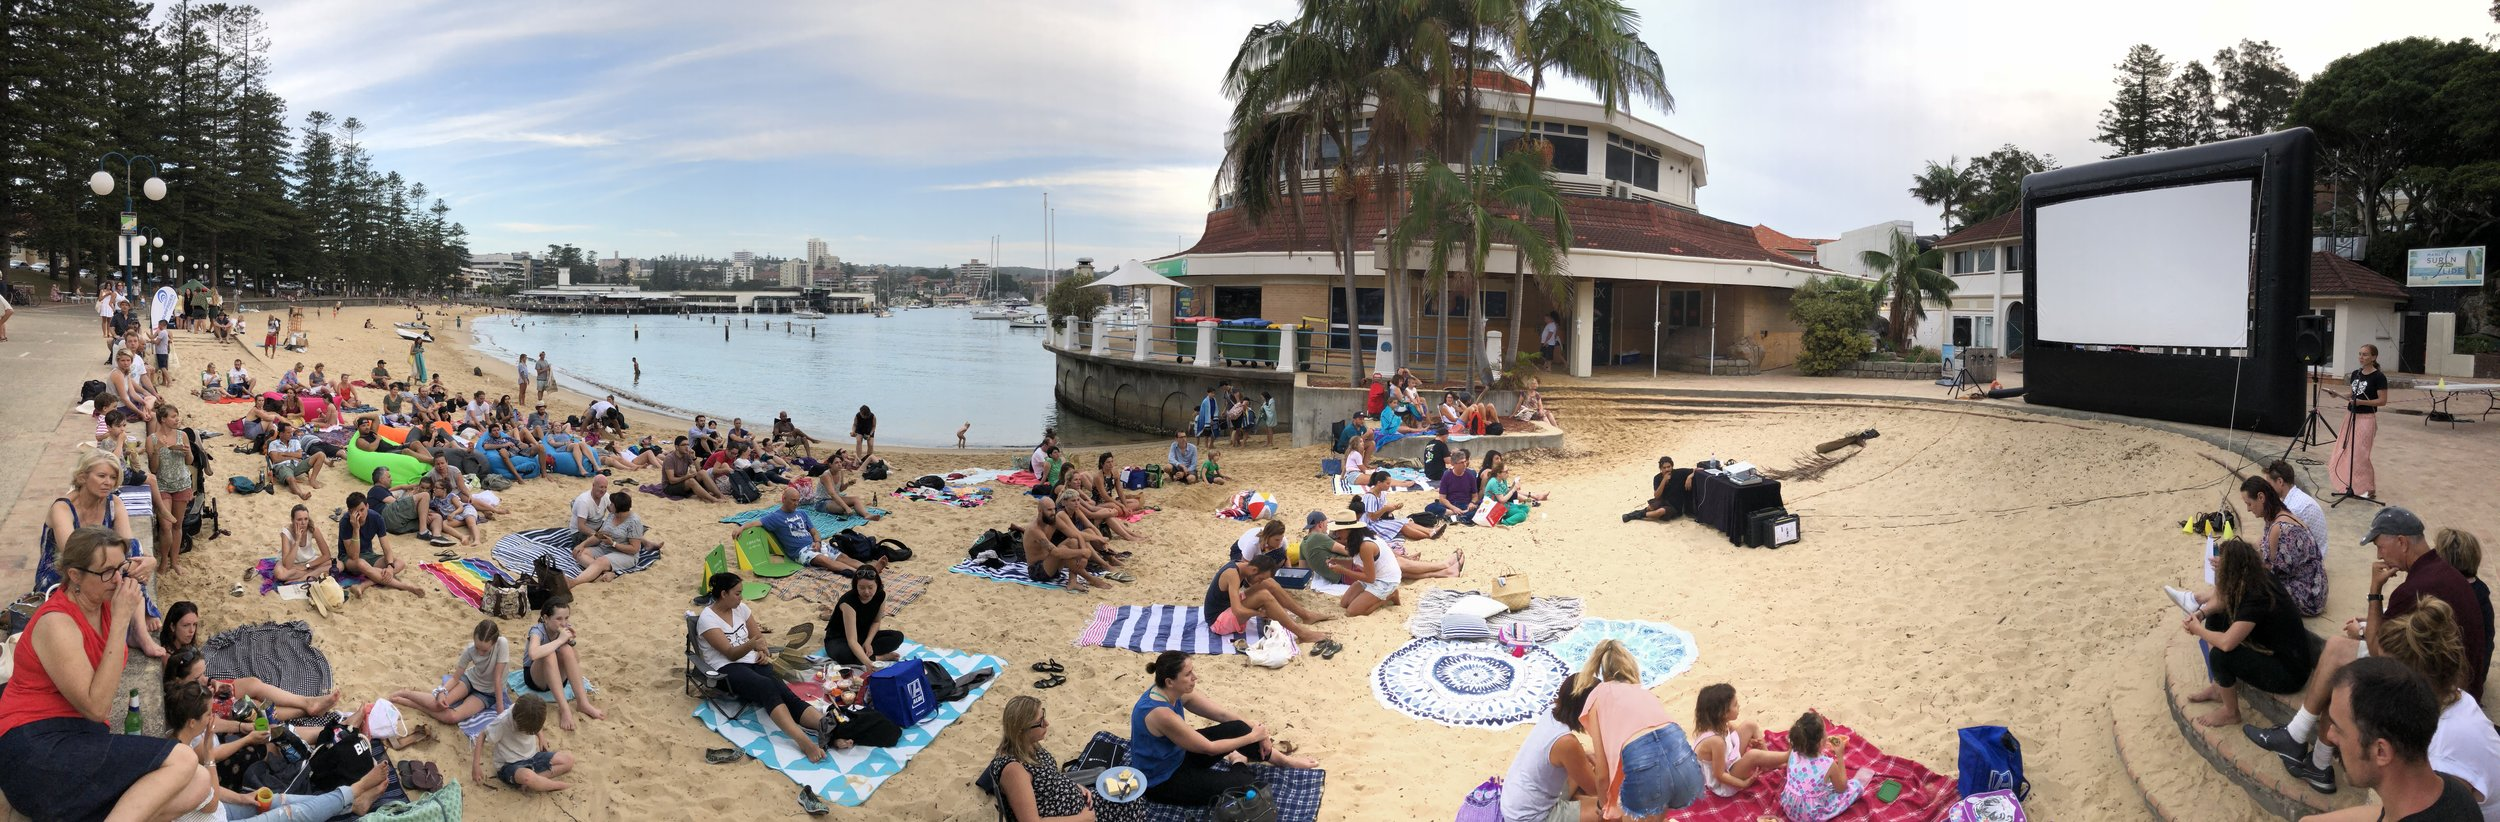 Outdoor screening of Chasing Coral as we say farewell to Manly Sea Life Sanctuary